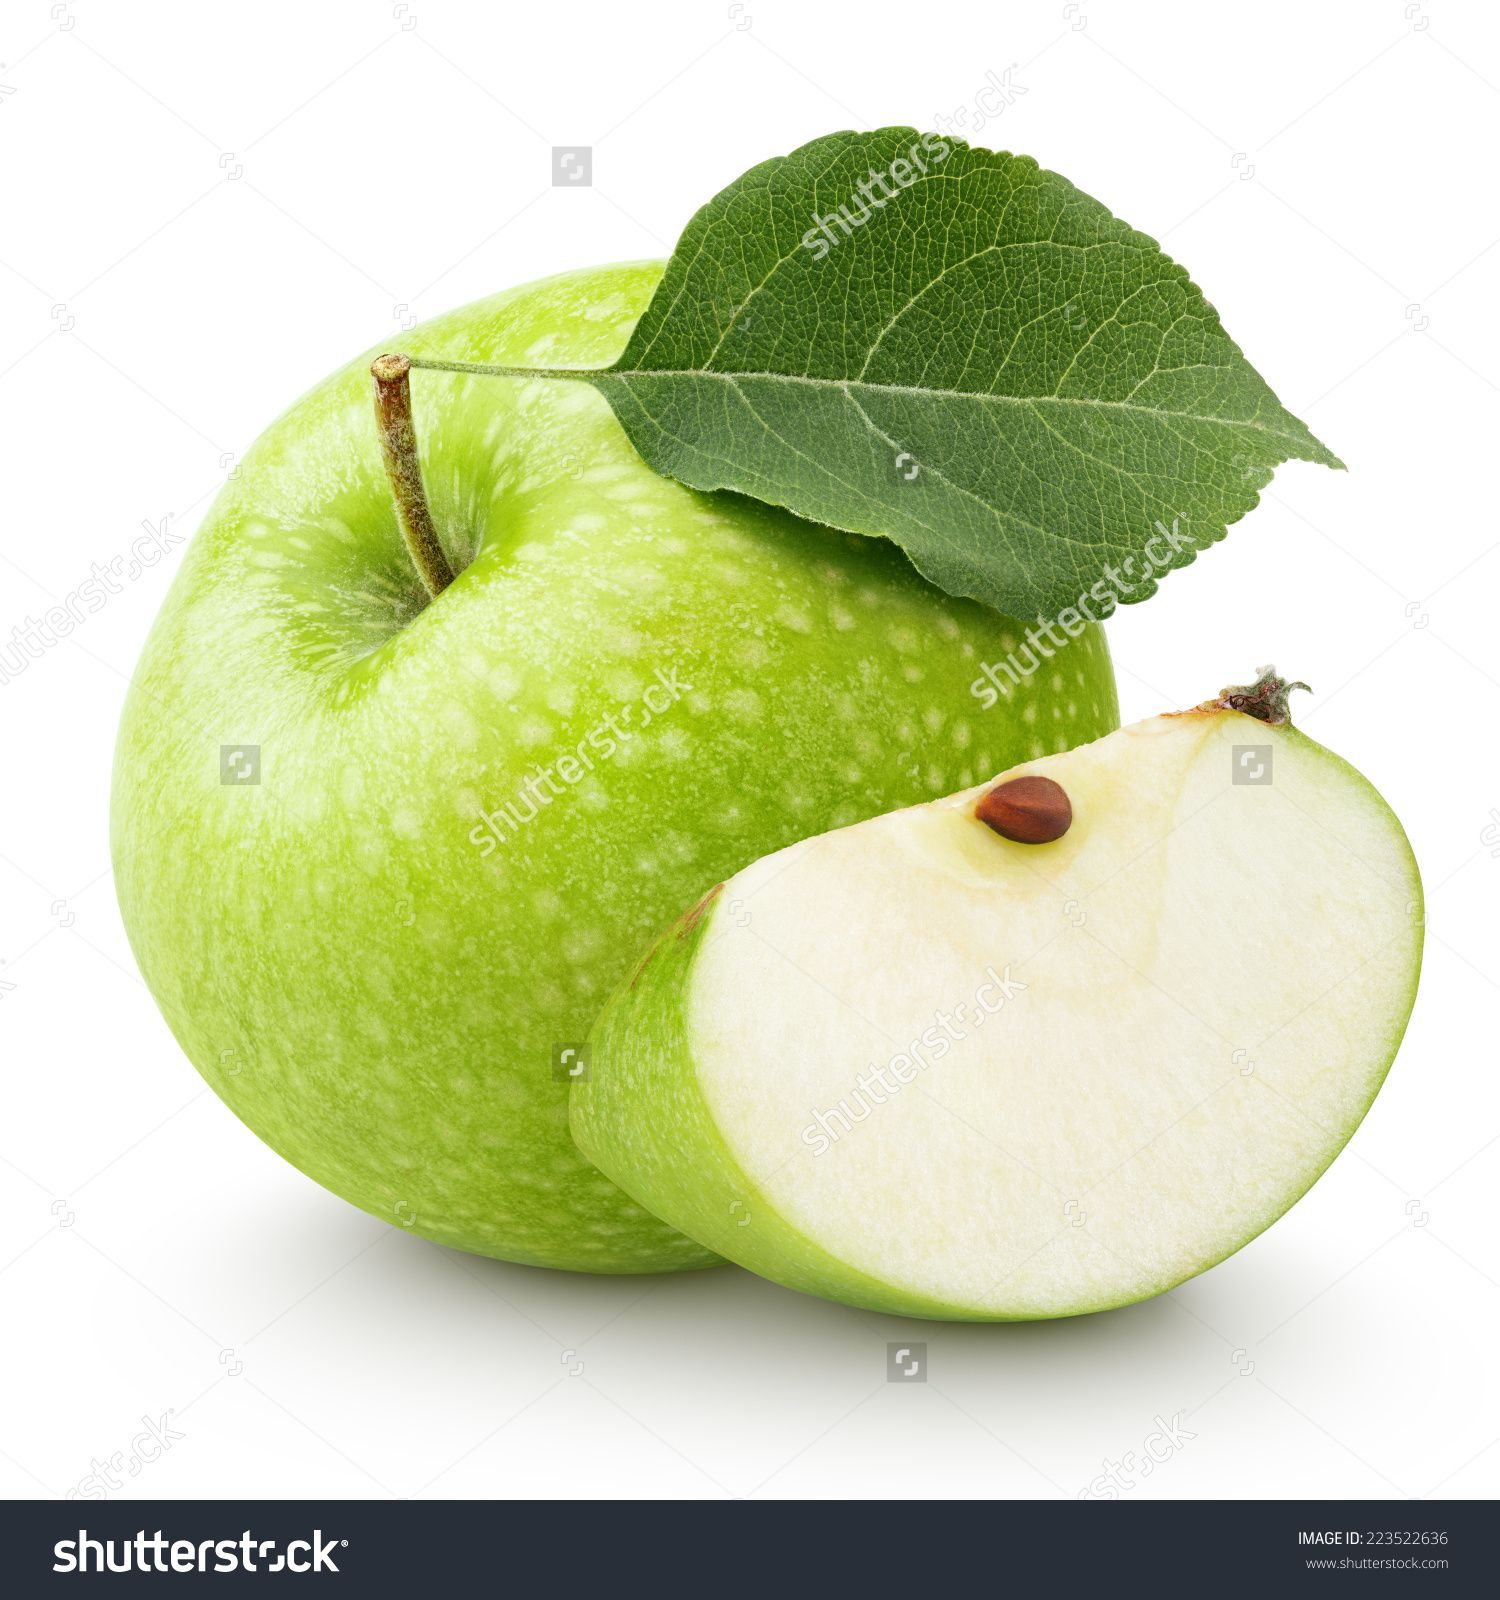 Ripe Green Apple With Leaf And Slice Isolated On A White Background With Clipping Path Stock Photo 223522636 Shut Green Apple Fruits Photos Fruit Photography